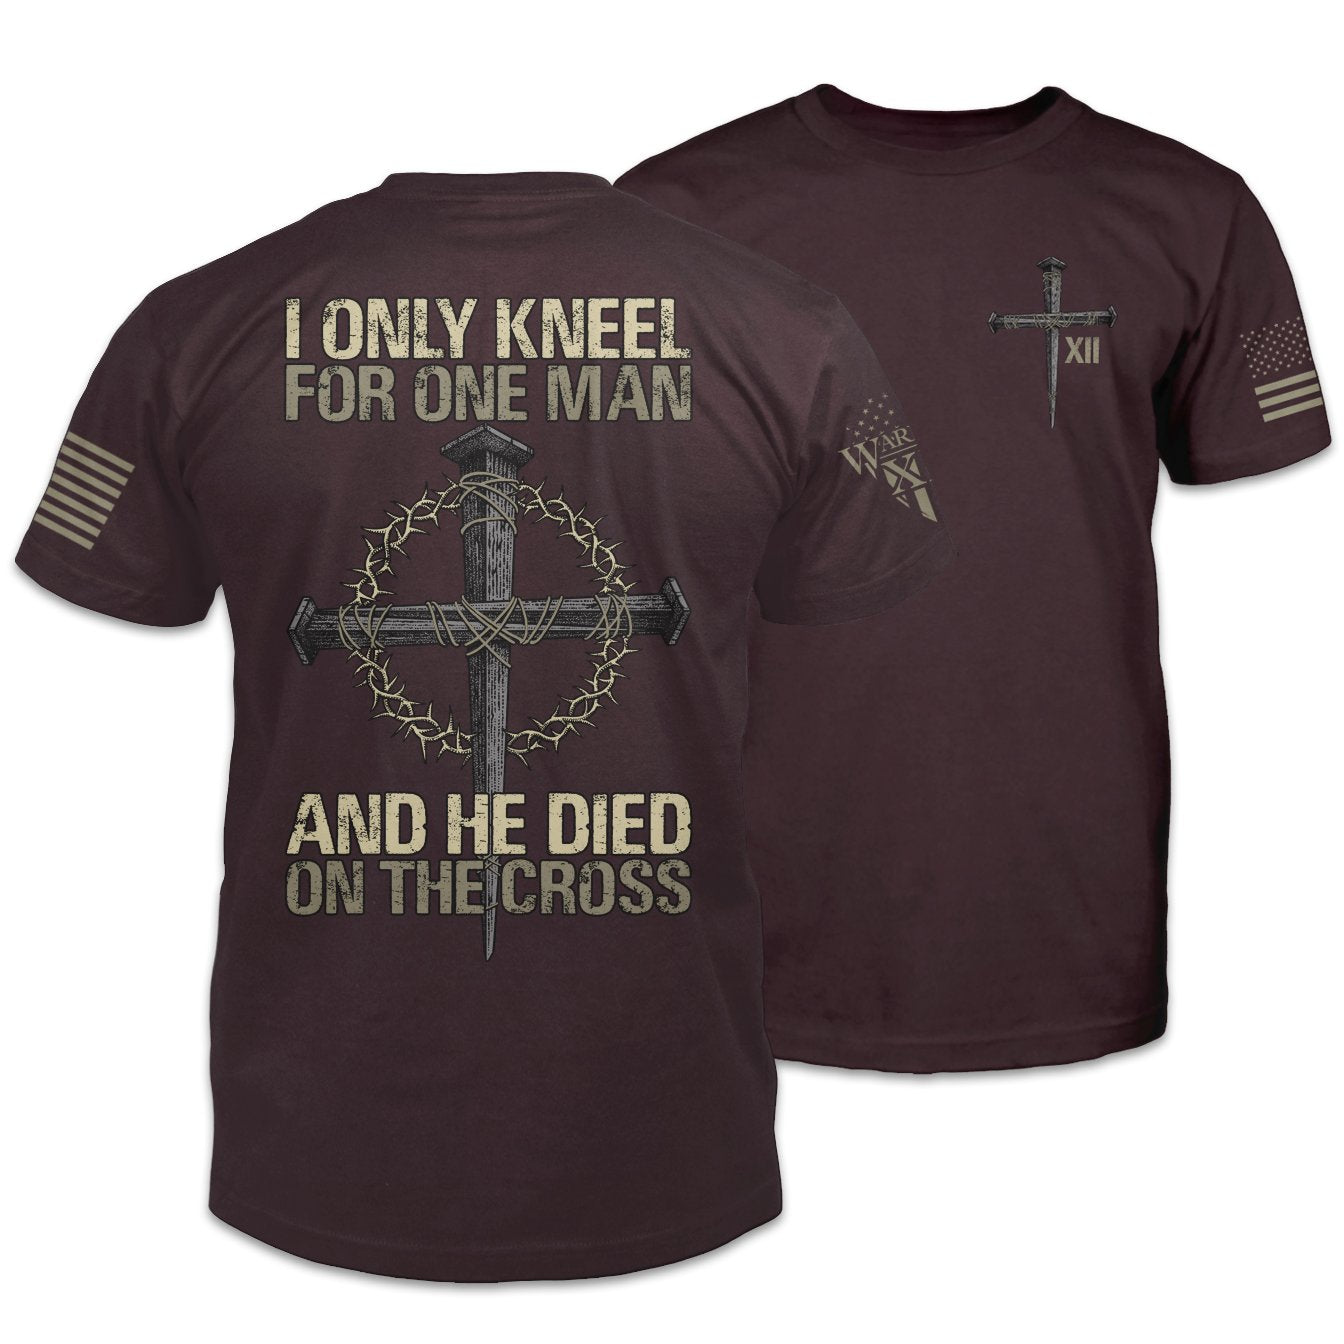 I Only Kneel For One Man Shirt